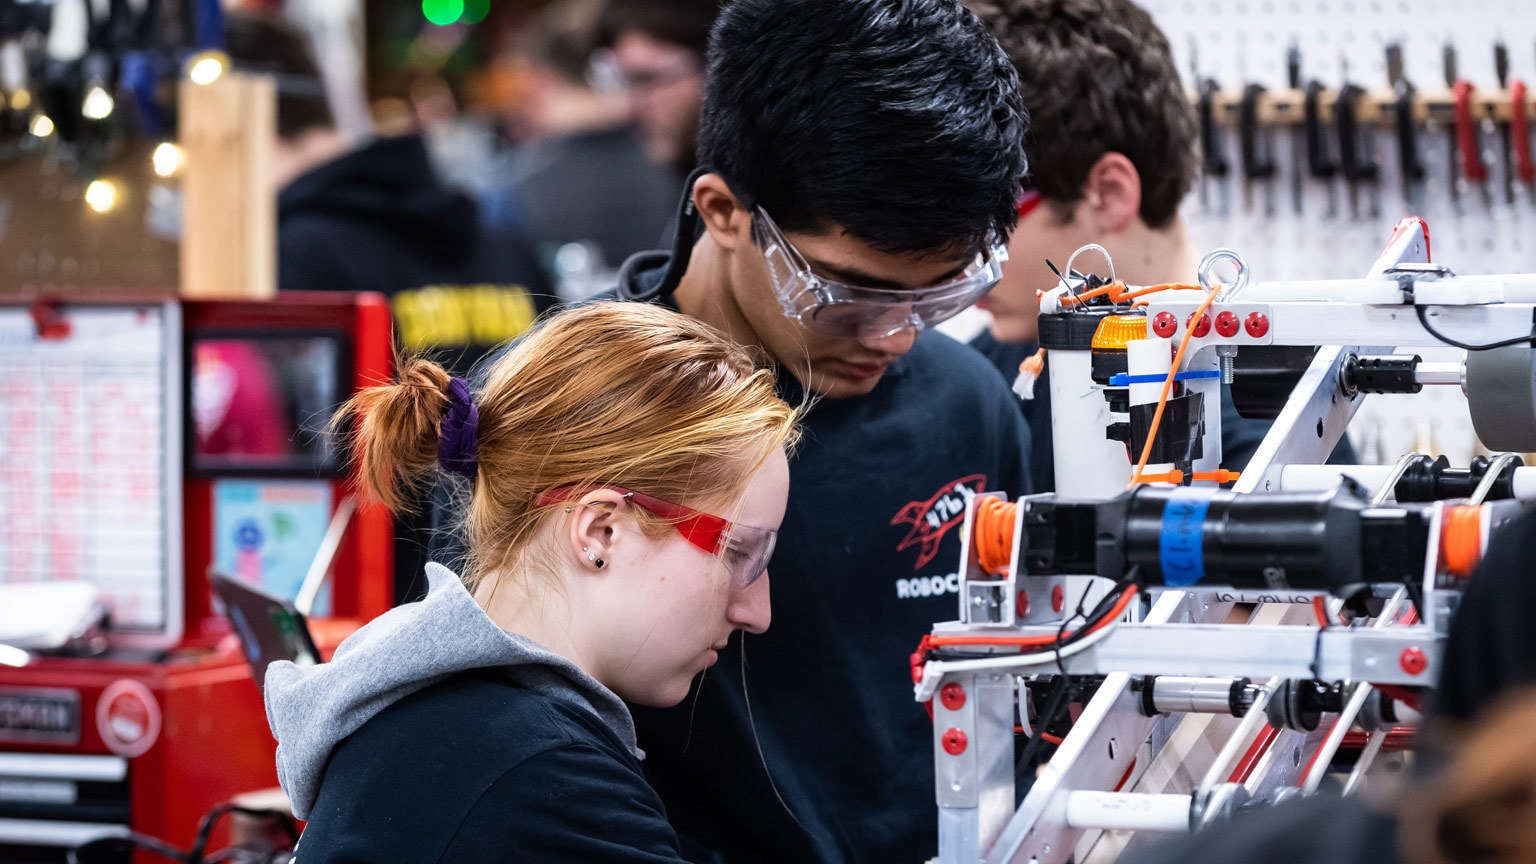 The FIRST Robotics Community Embodies the Mission of Star Wars: Force for Change